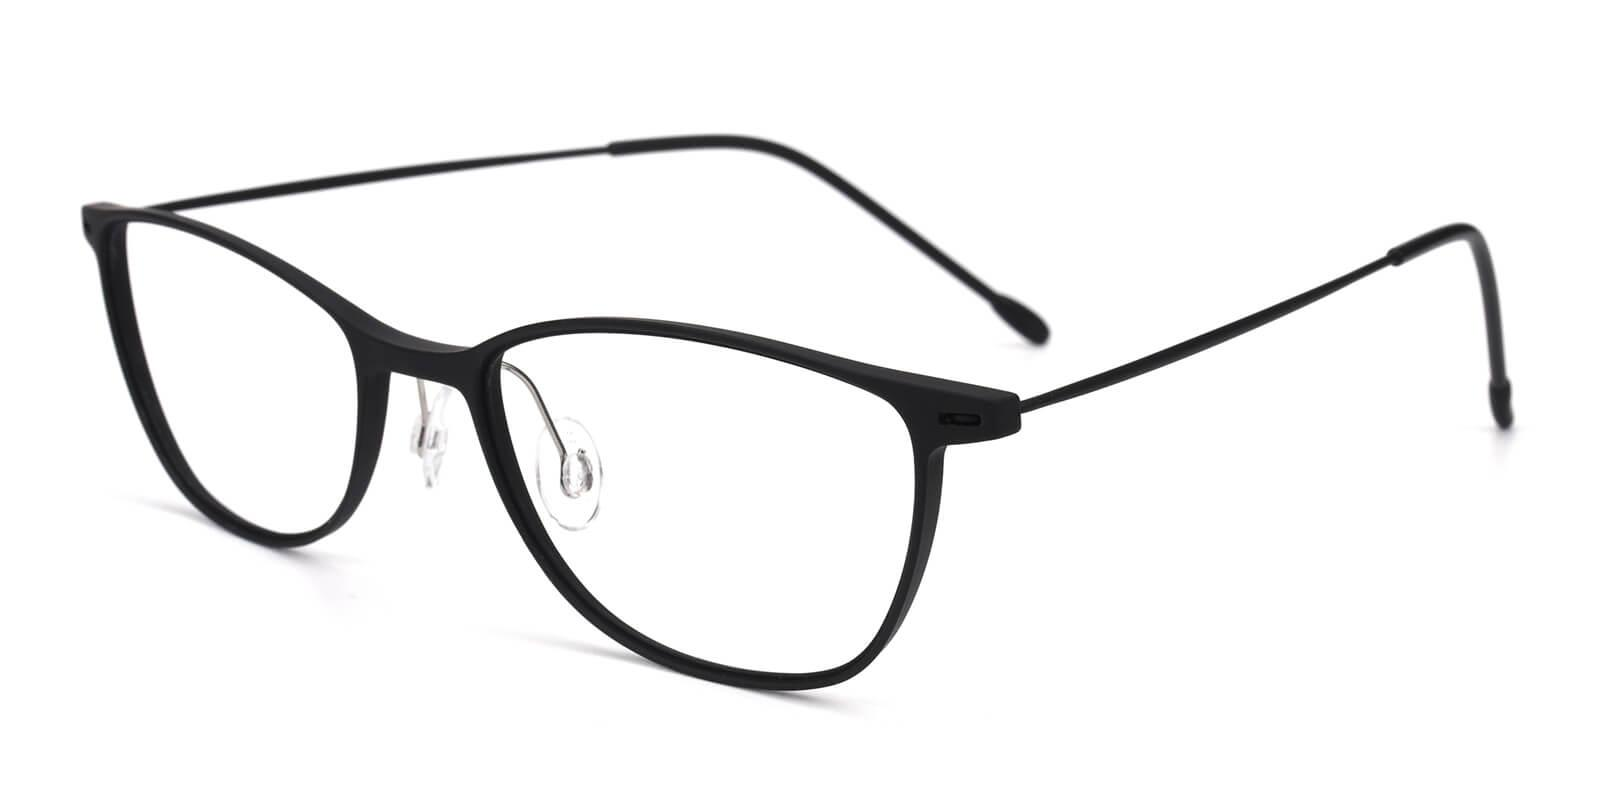 Pridgen-Black-Rectangle / Cat-Combination-Eyeglasses-additional1